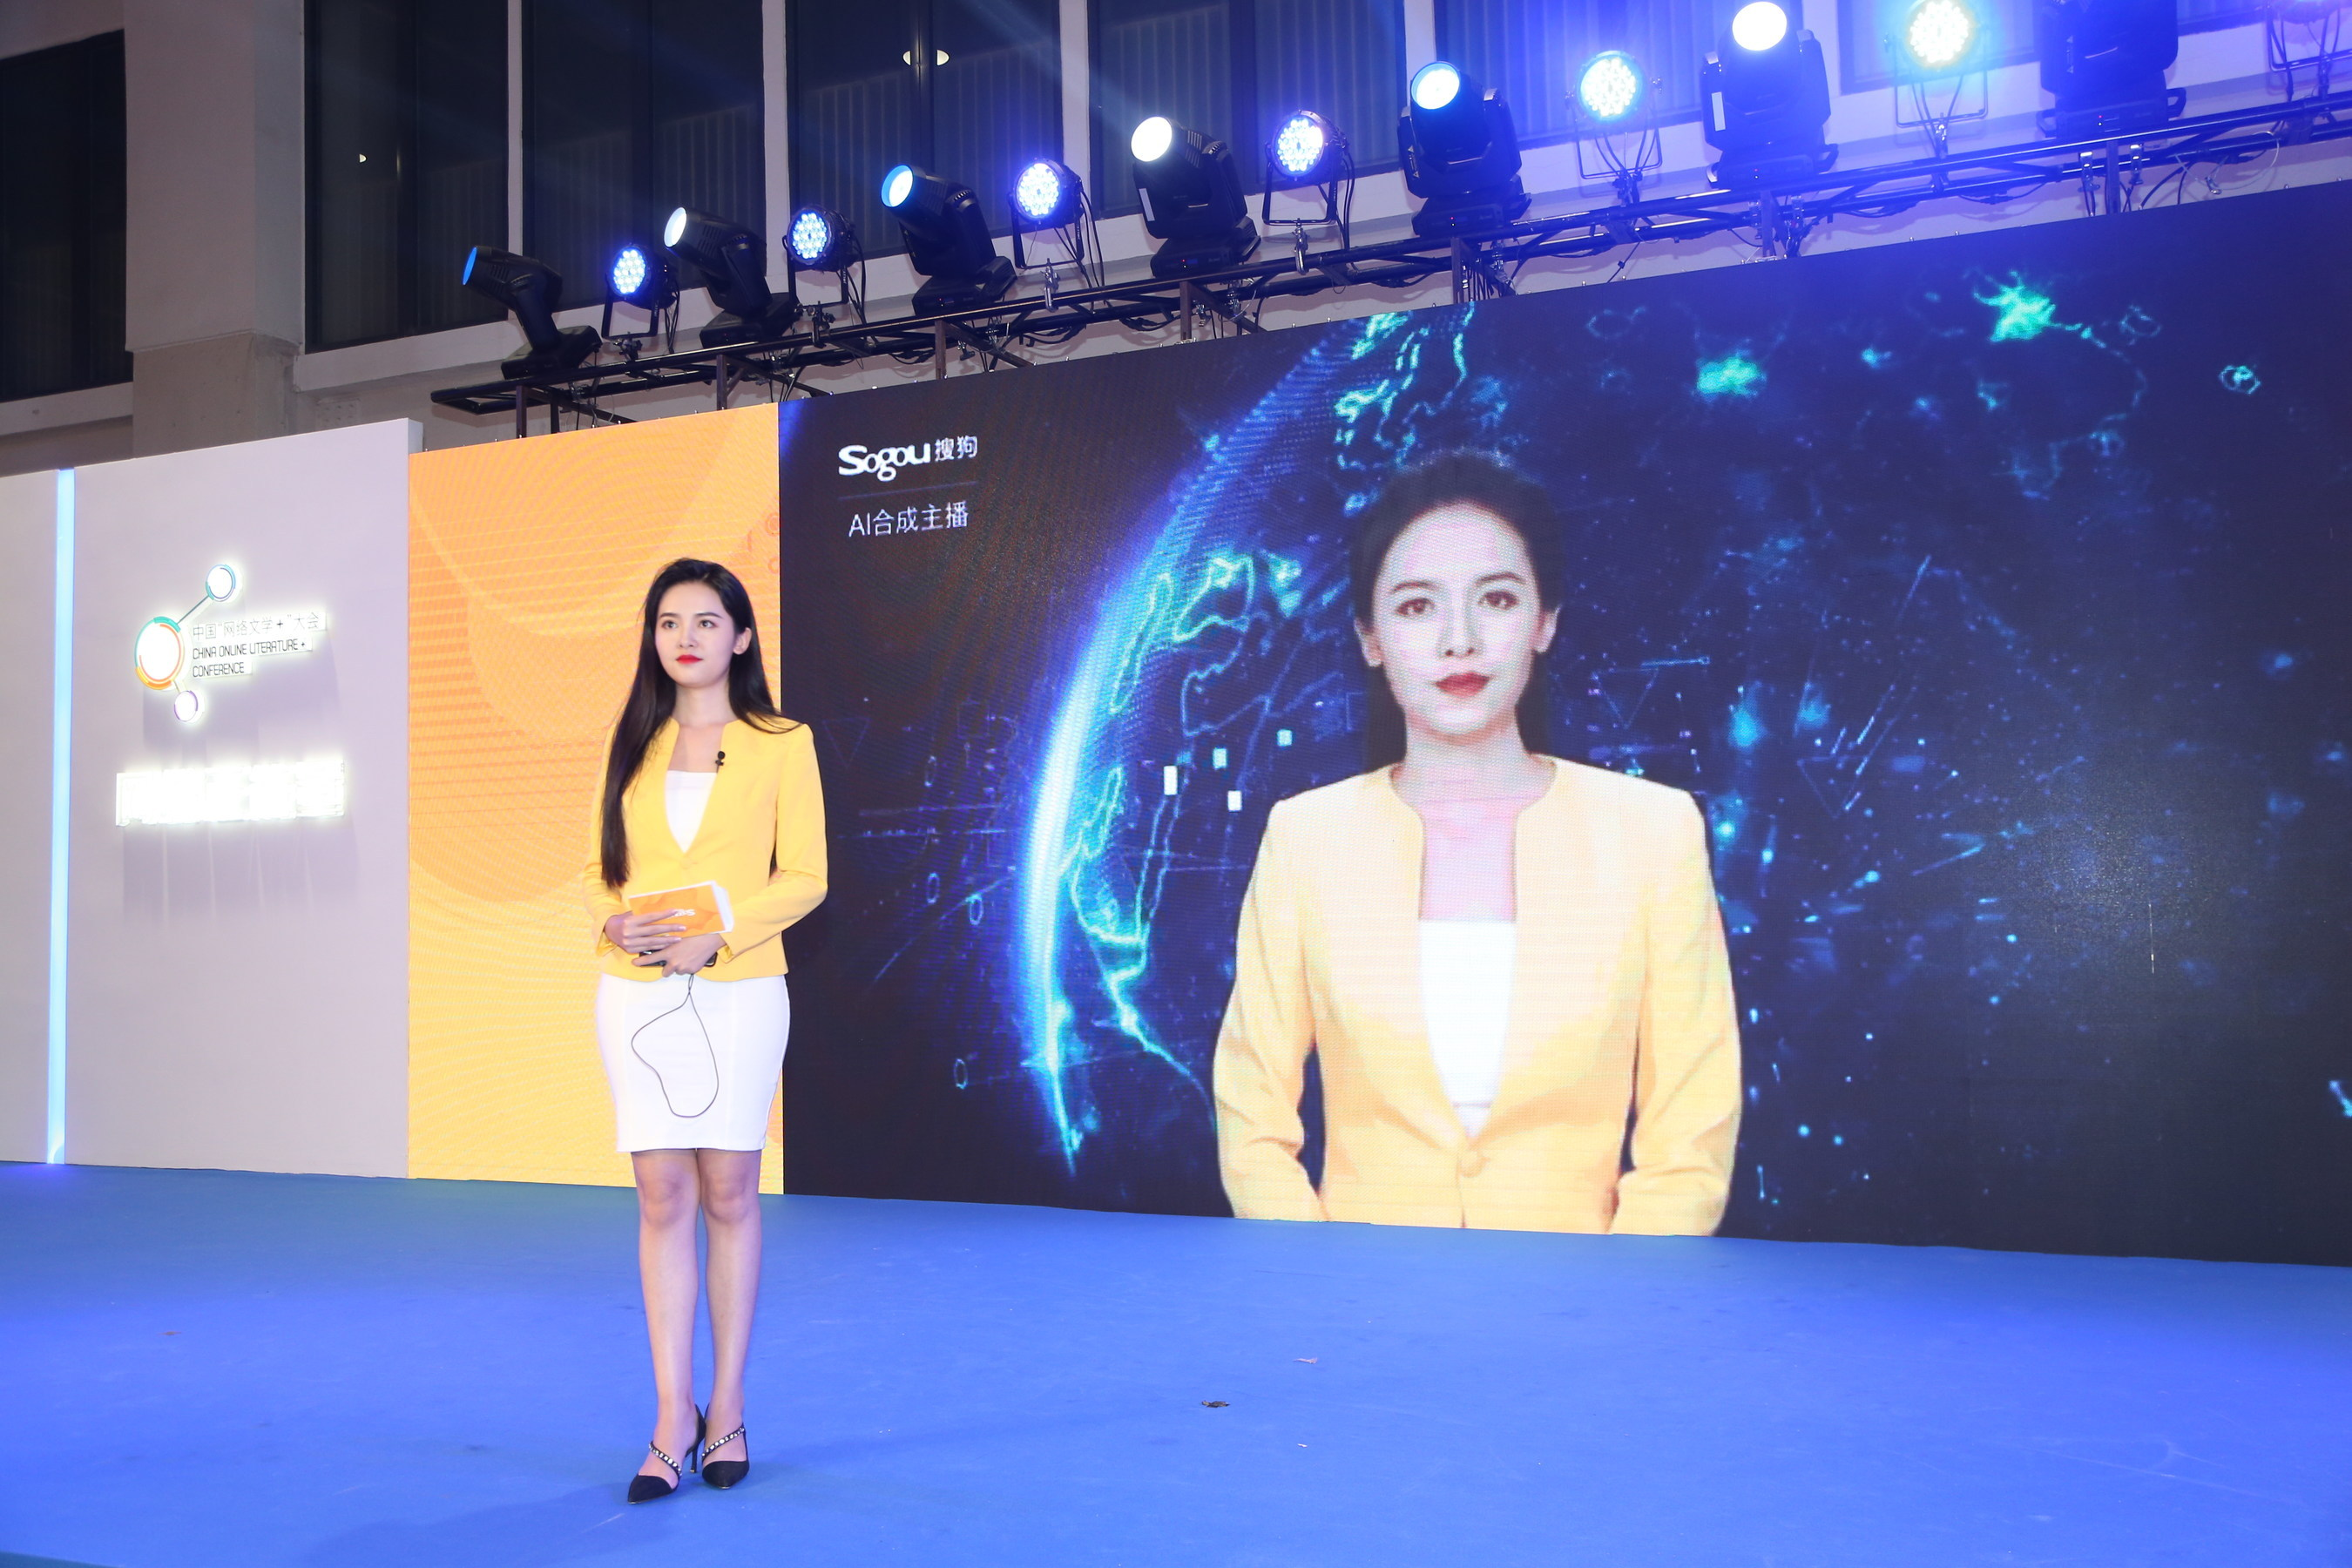 Chinese search engine Sogou is showing how their are so many potential future use cases for their lifelike, artificially intelligent avatars.